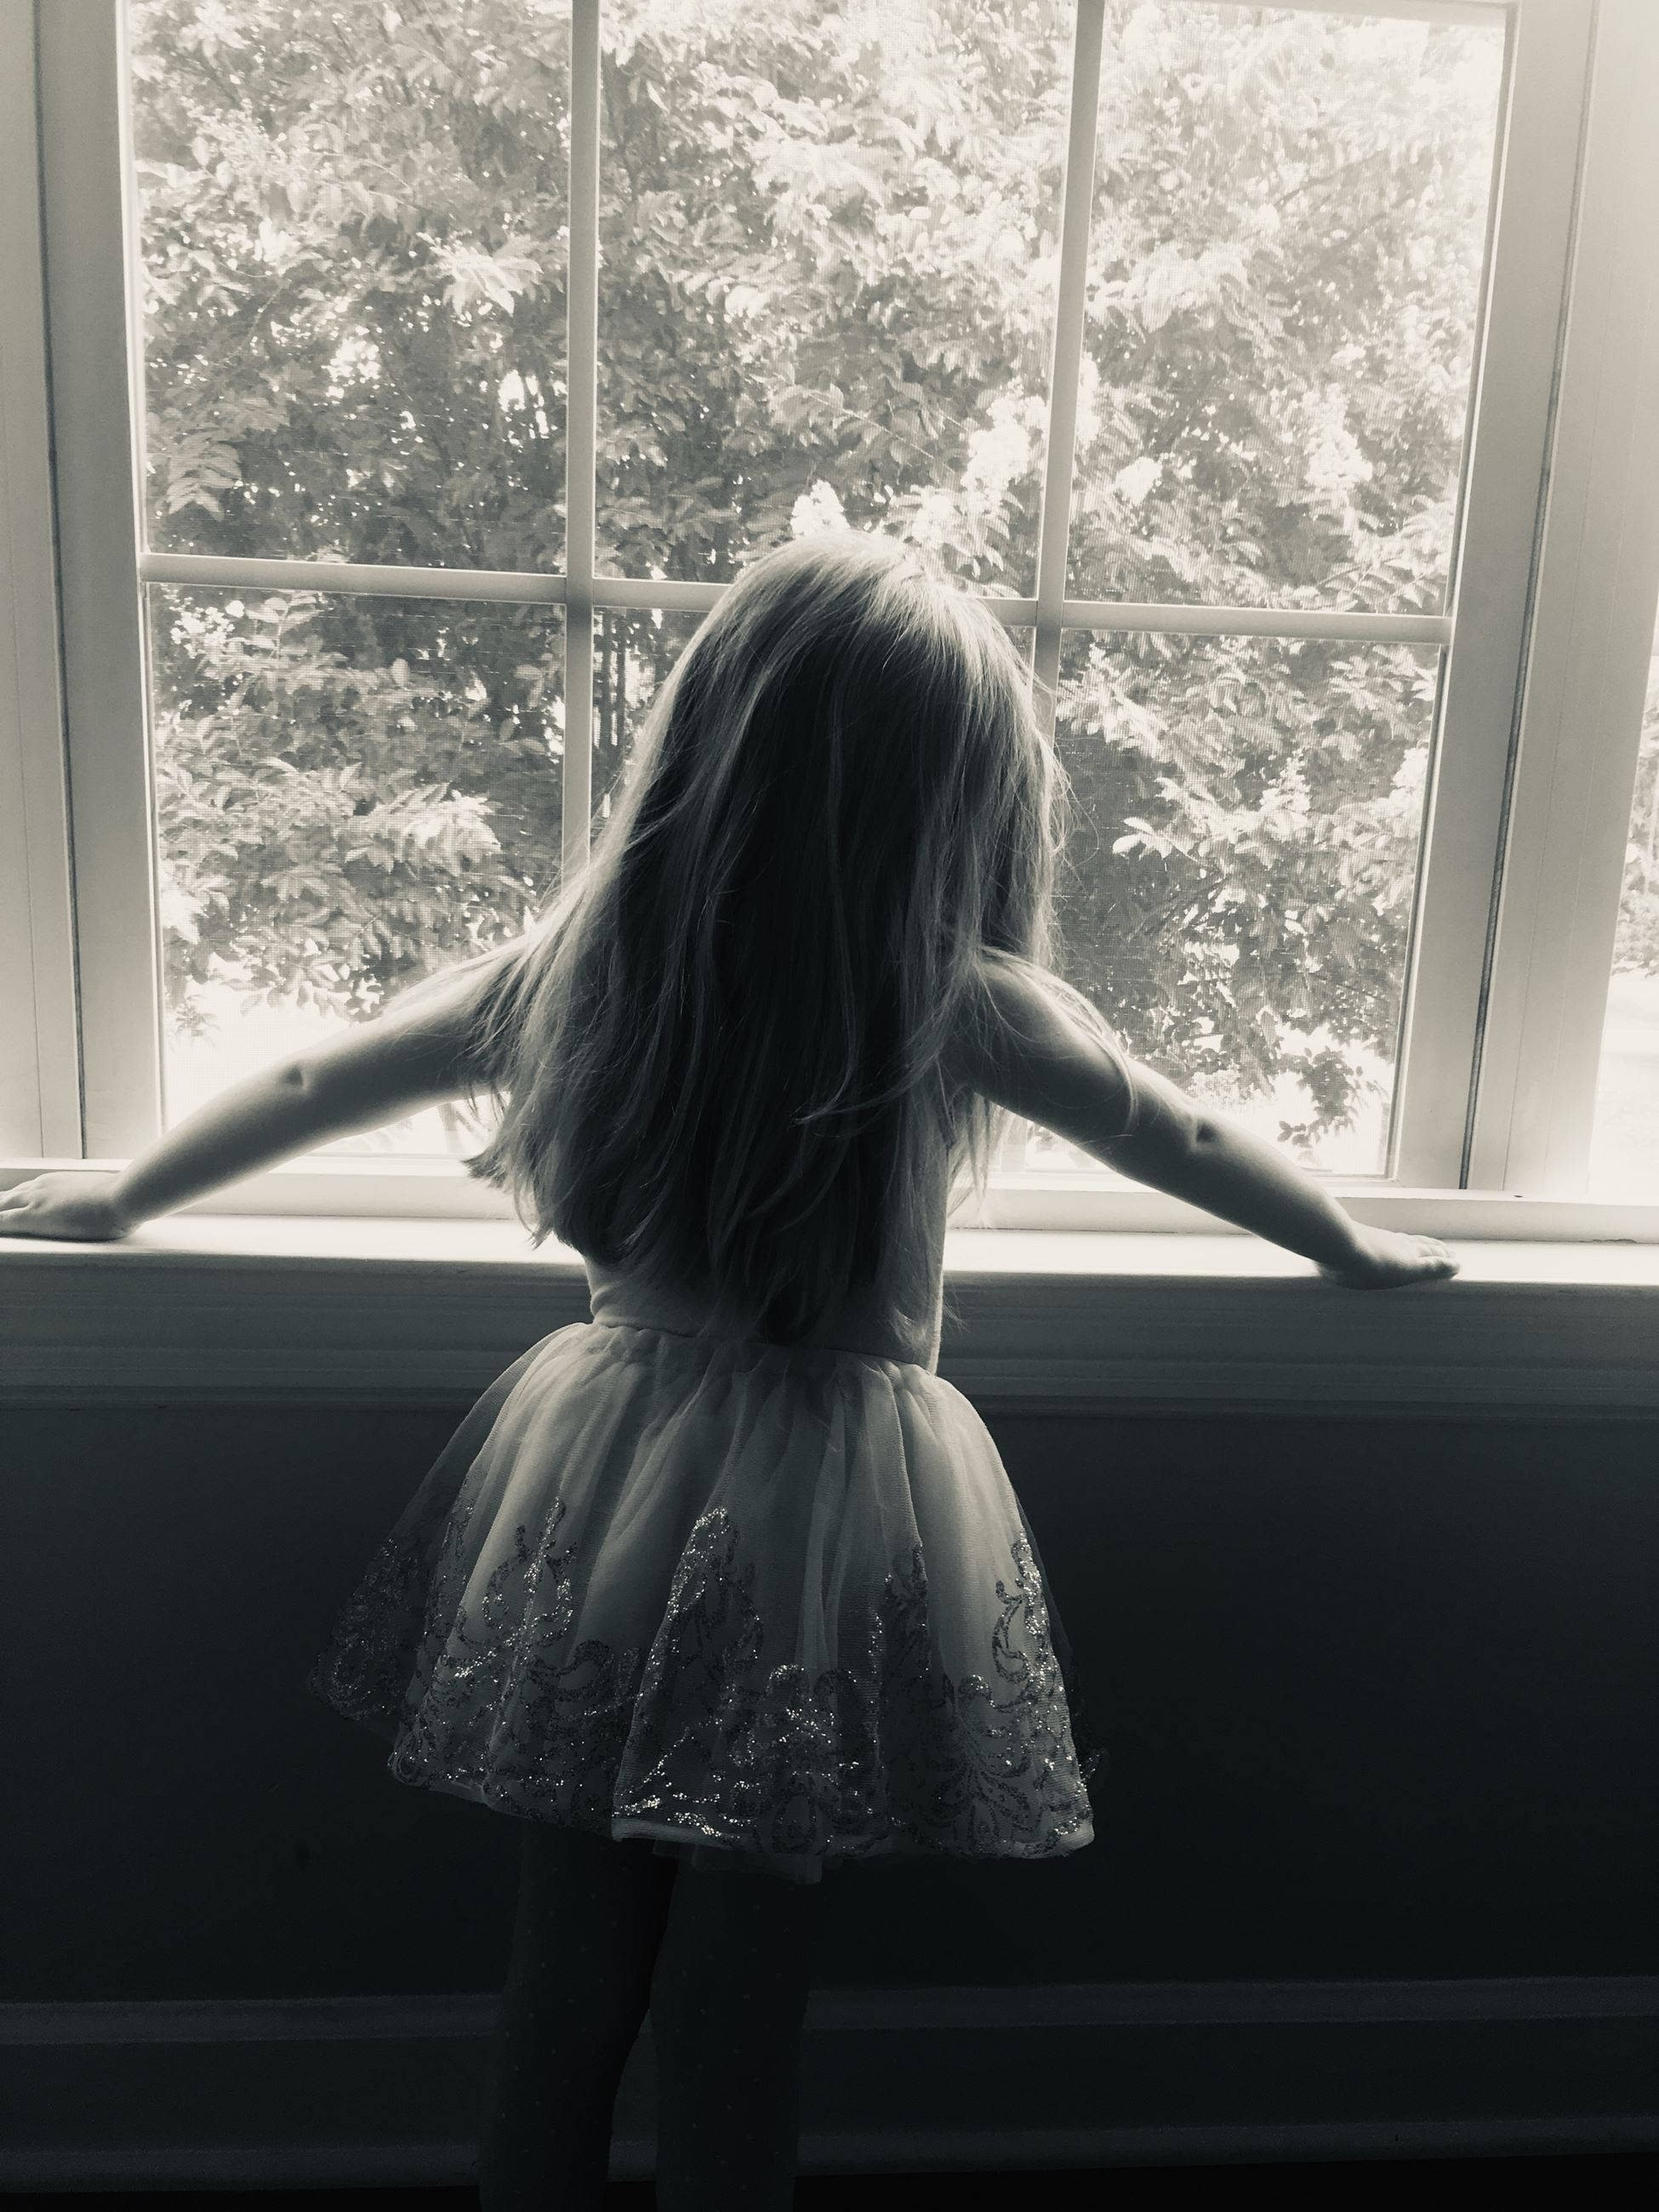 People, Young Ballerina by Elise Ponder HM